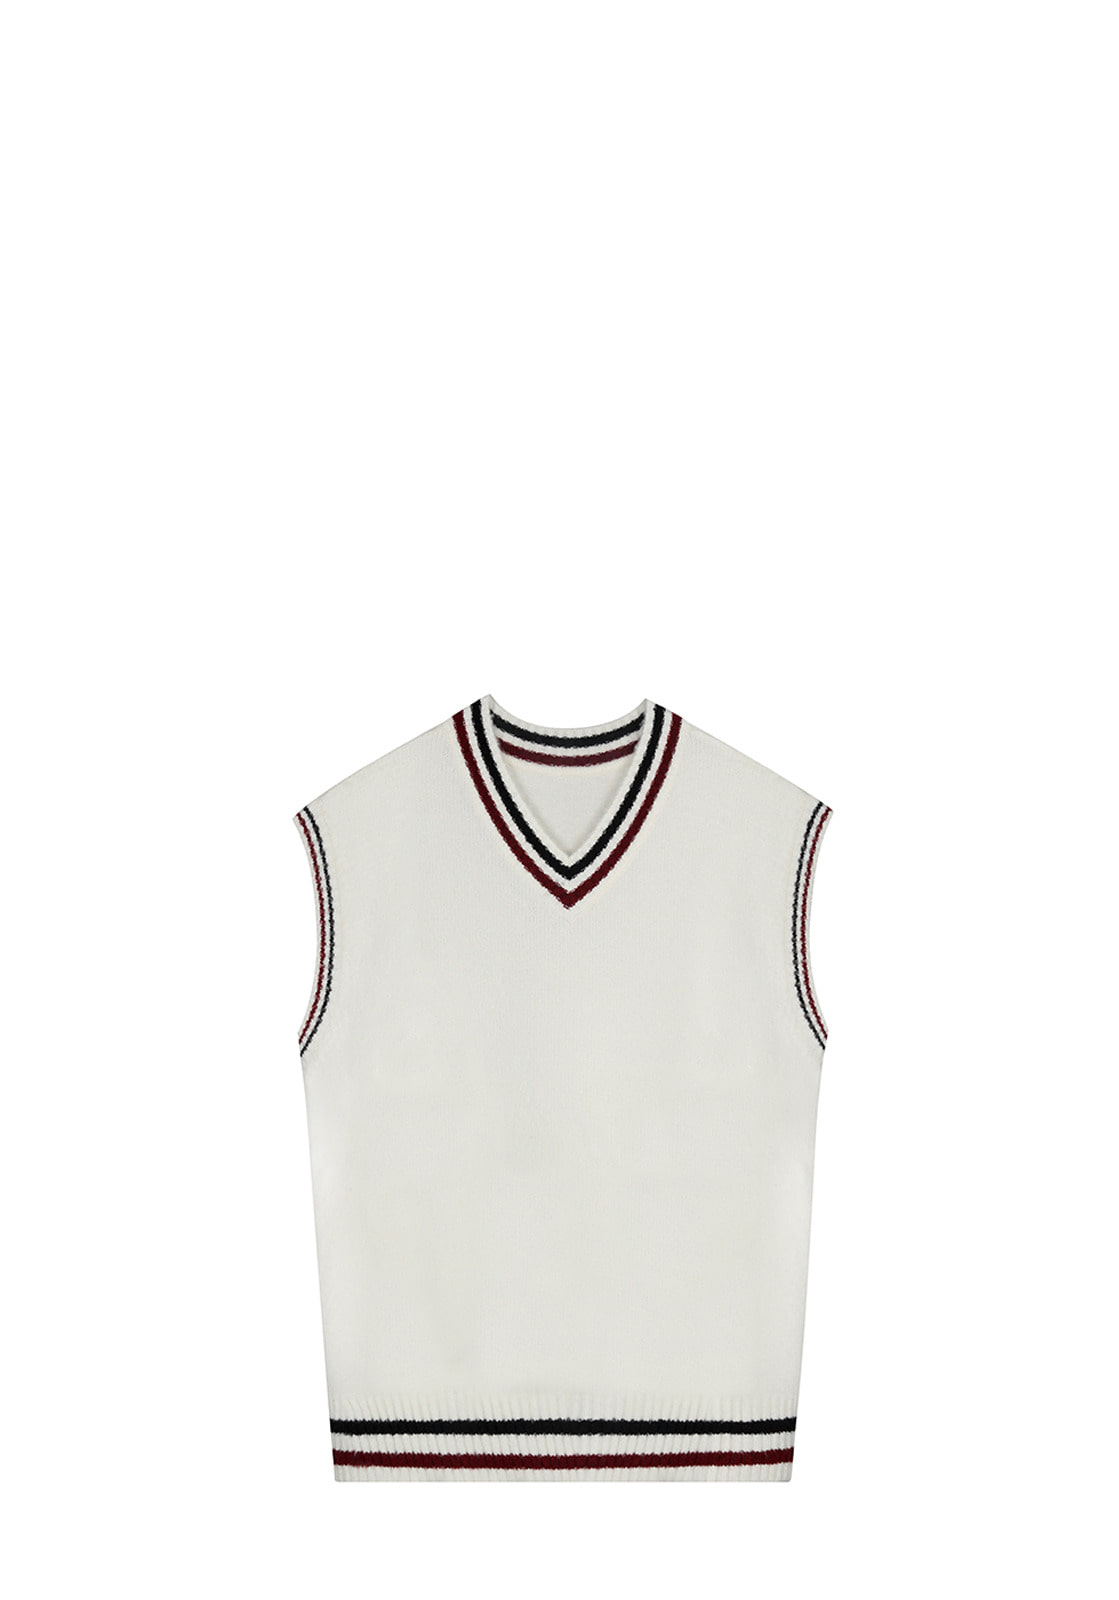 V511 TWO TONE VEST KNITWHITE